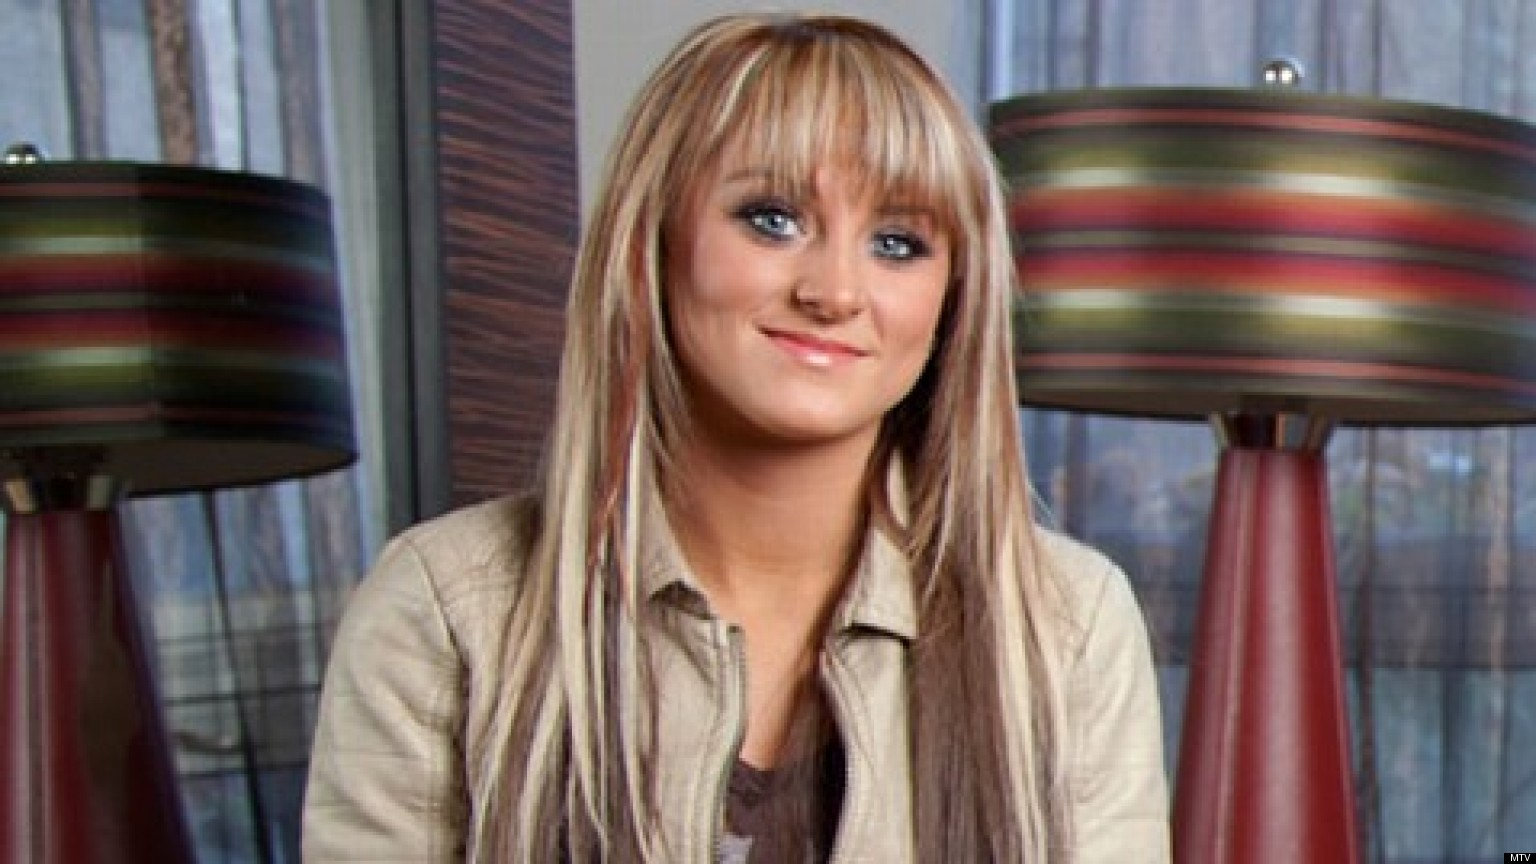 Leah Messer's Baby: 'Teen Mom 2' Star Is Expecting Her